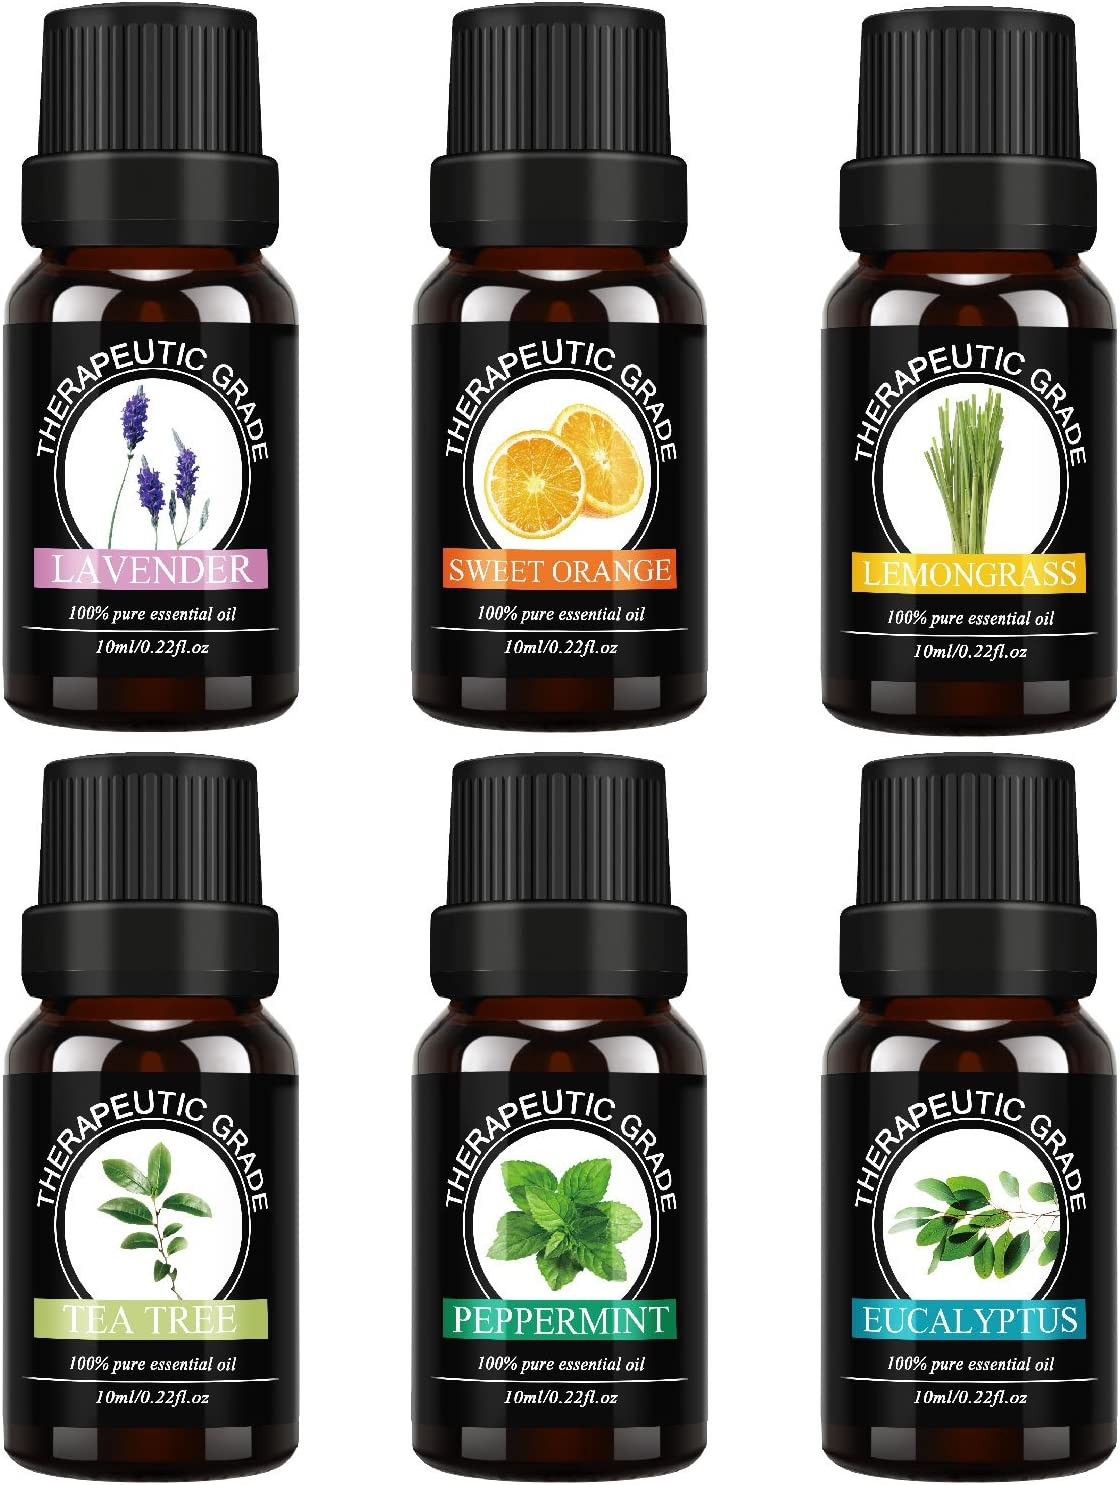 Top 6 100% Pure Premium Therapeutic Grade Oils -Lavender, Tea Tree, Eucalyptus, Lemongrass, Orange, Peppermint Essential Oils.